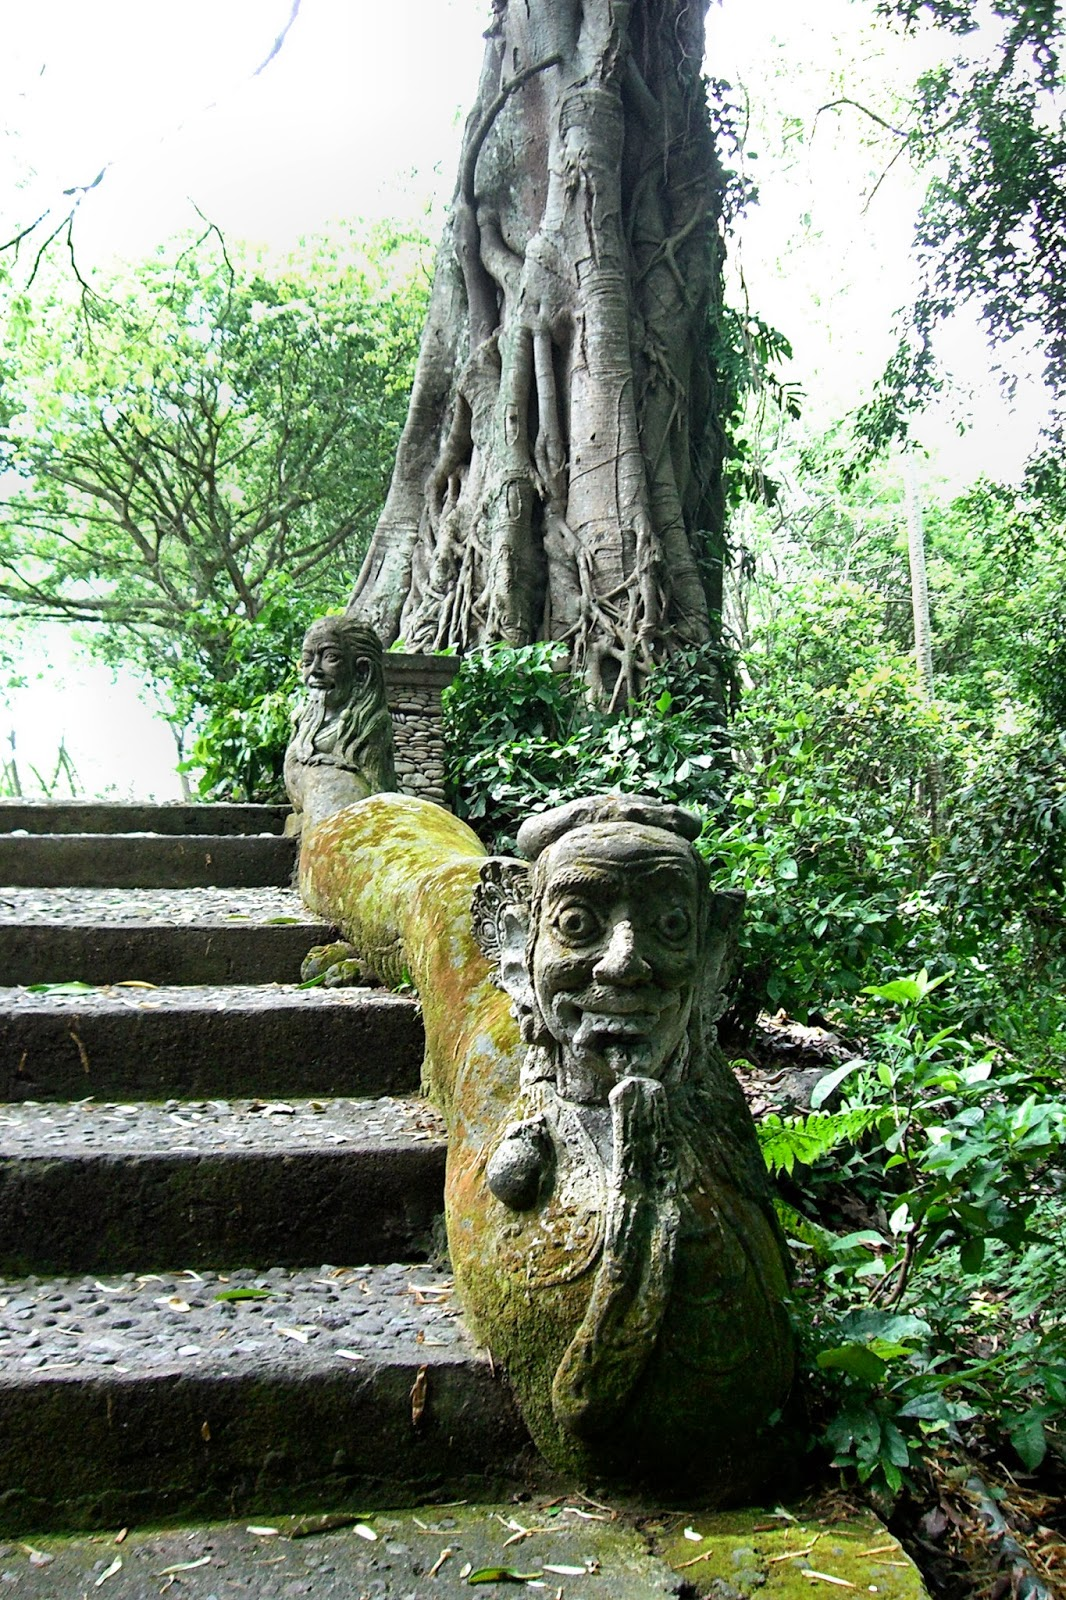 Enchanting Se Asia Bali Indonesia Part Ubud Cultural Statues Scared